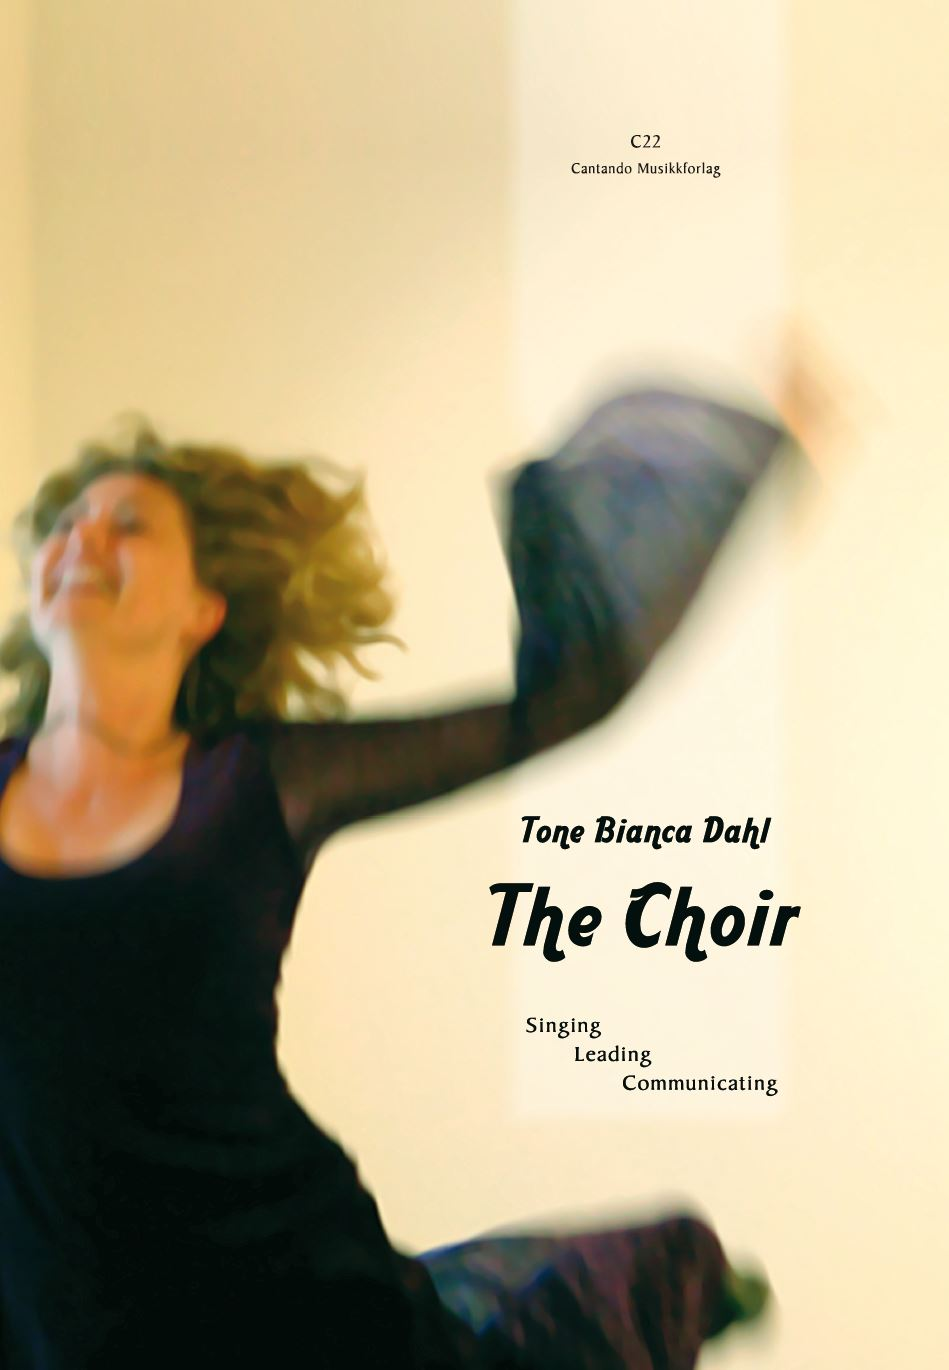 The Choir (Tone Bianca Dahl)